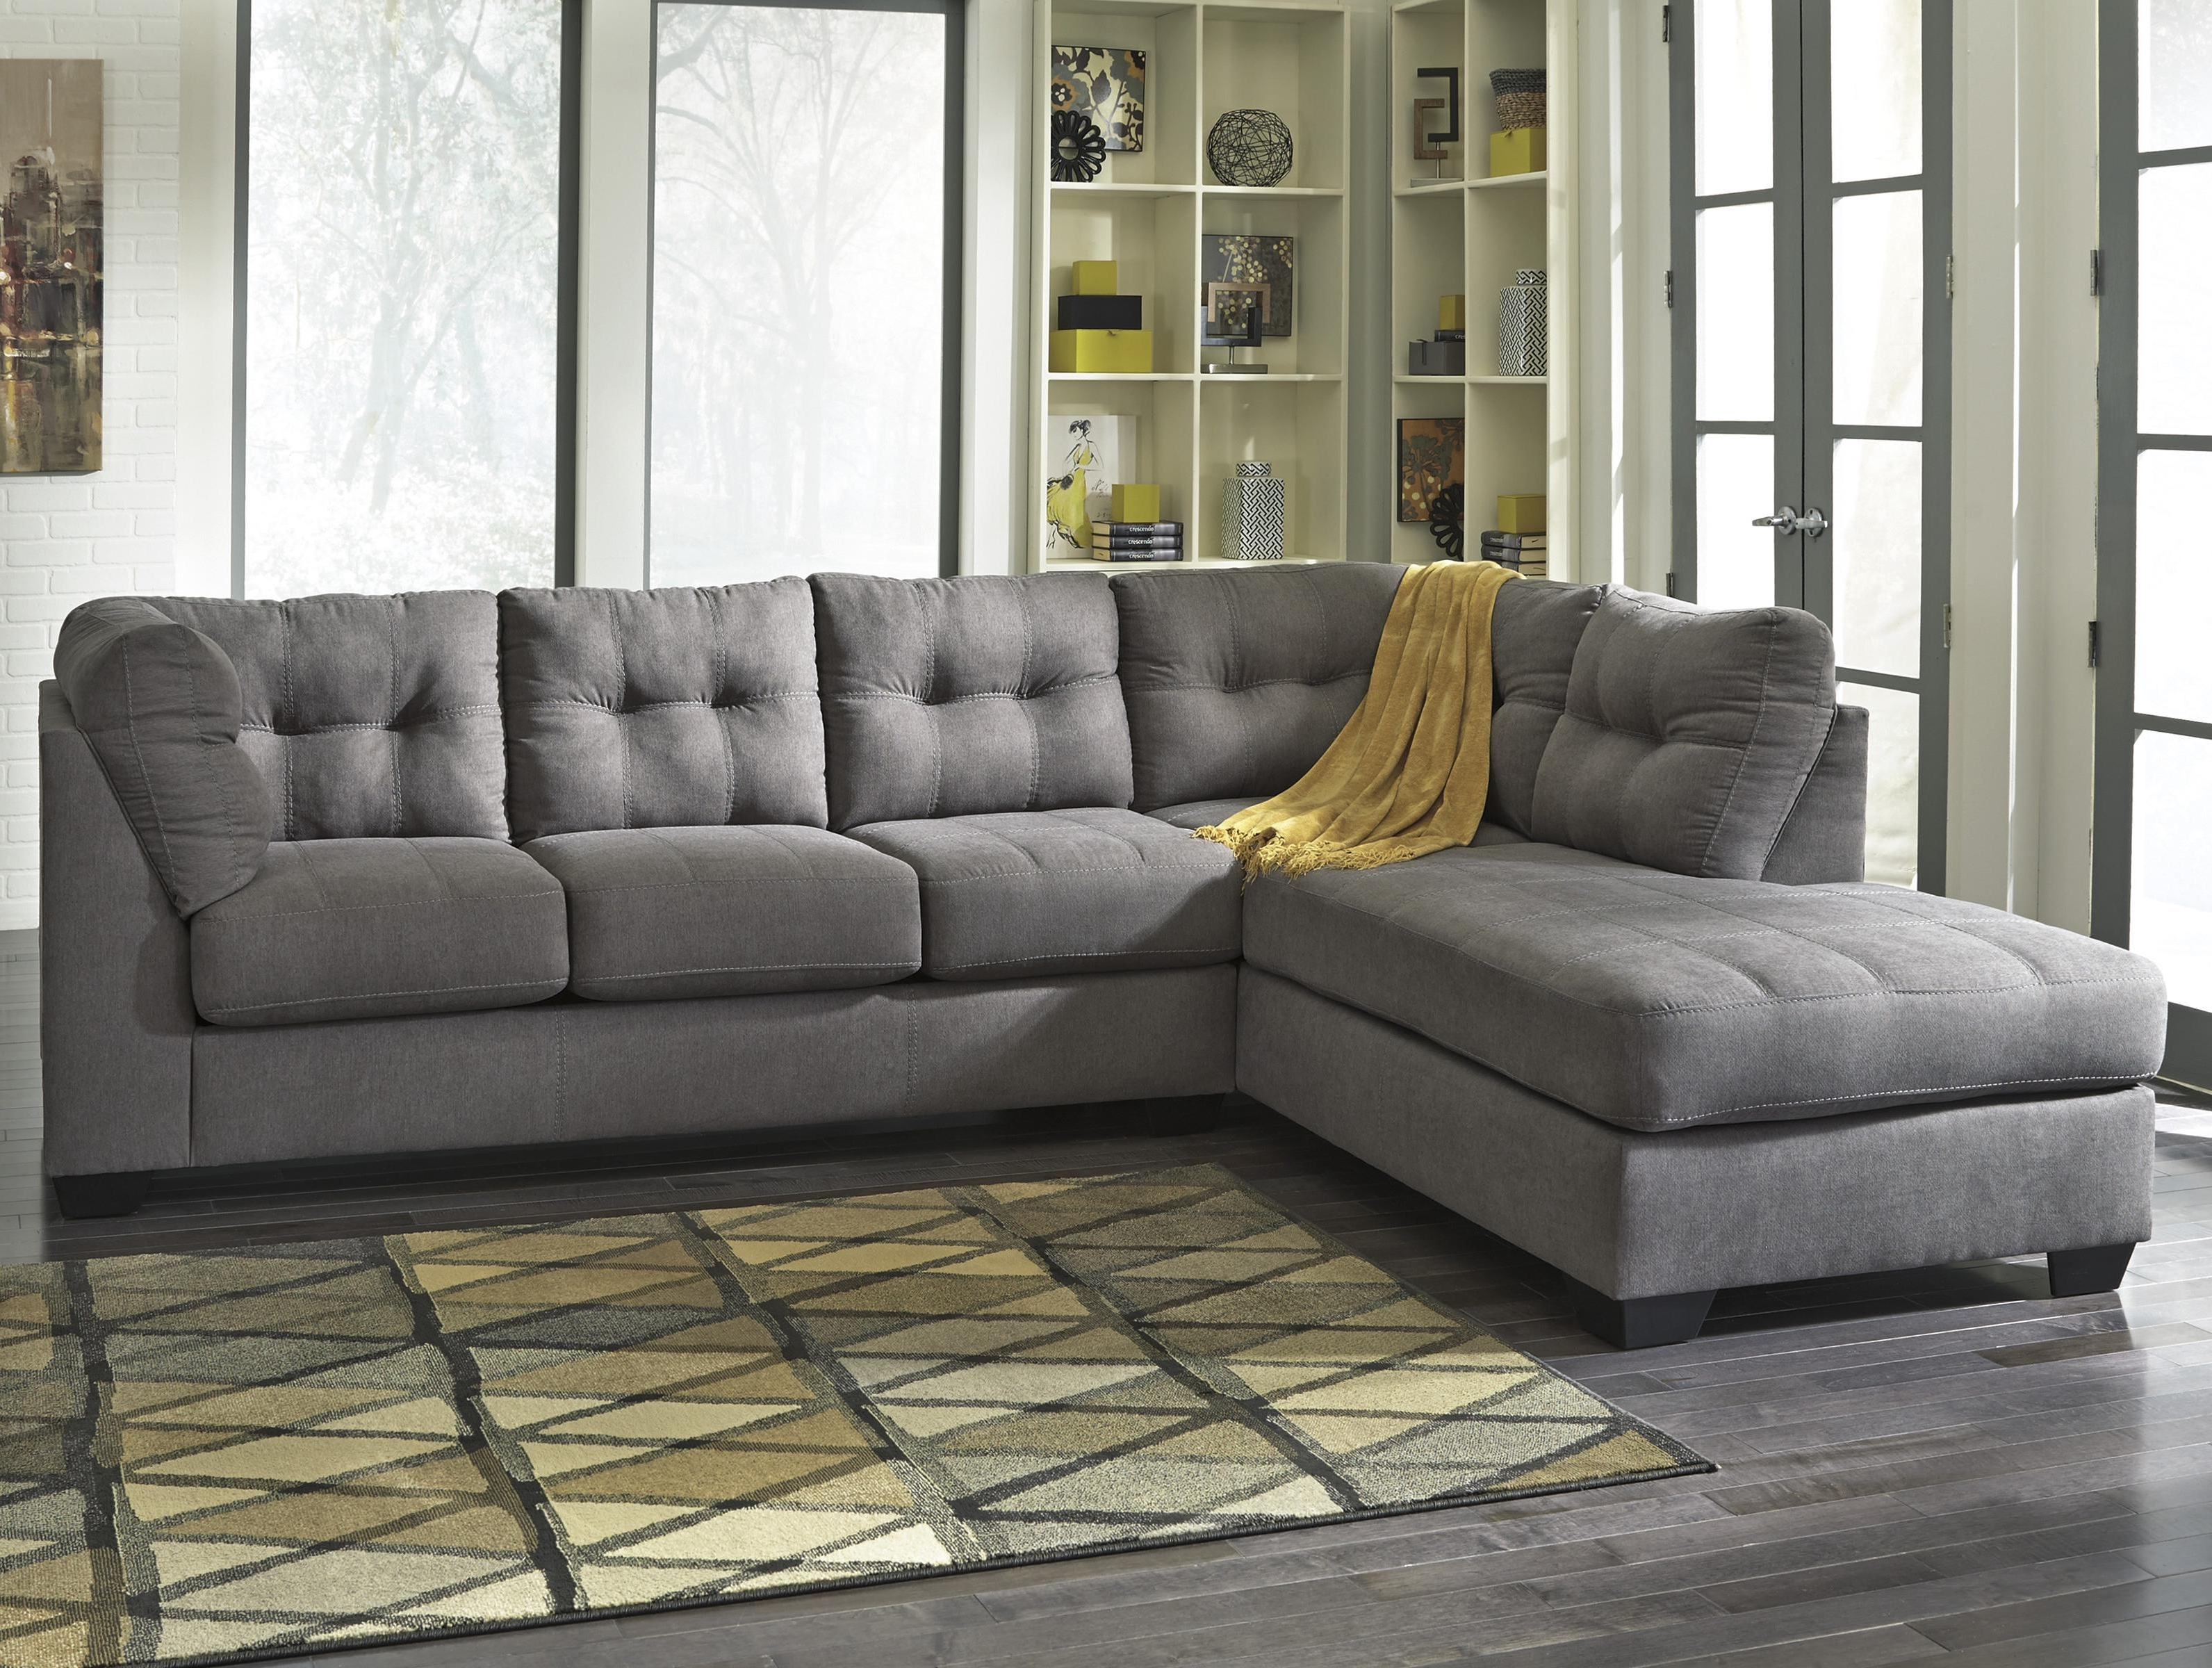 Long Chaise Sofas In Latest Benchcraft Maier – Charcoal 2 Piece Sectional With Left Chaise (View 11 of 20)